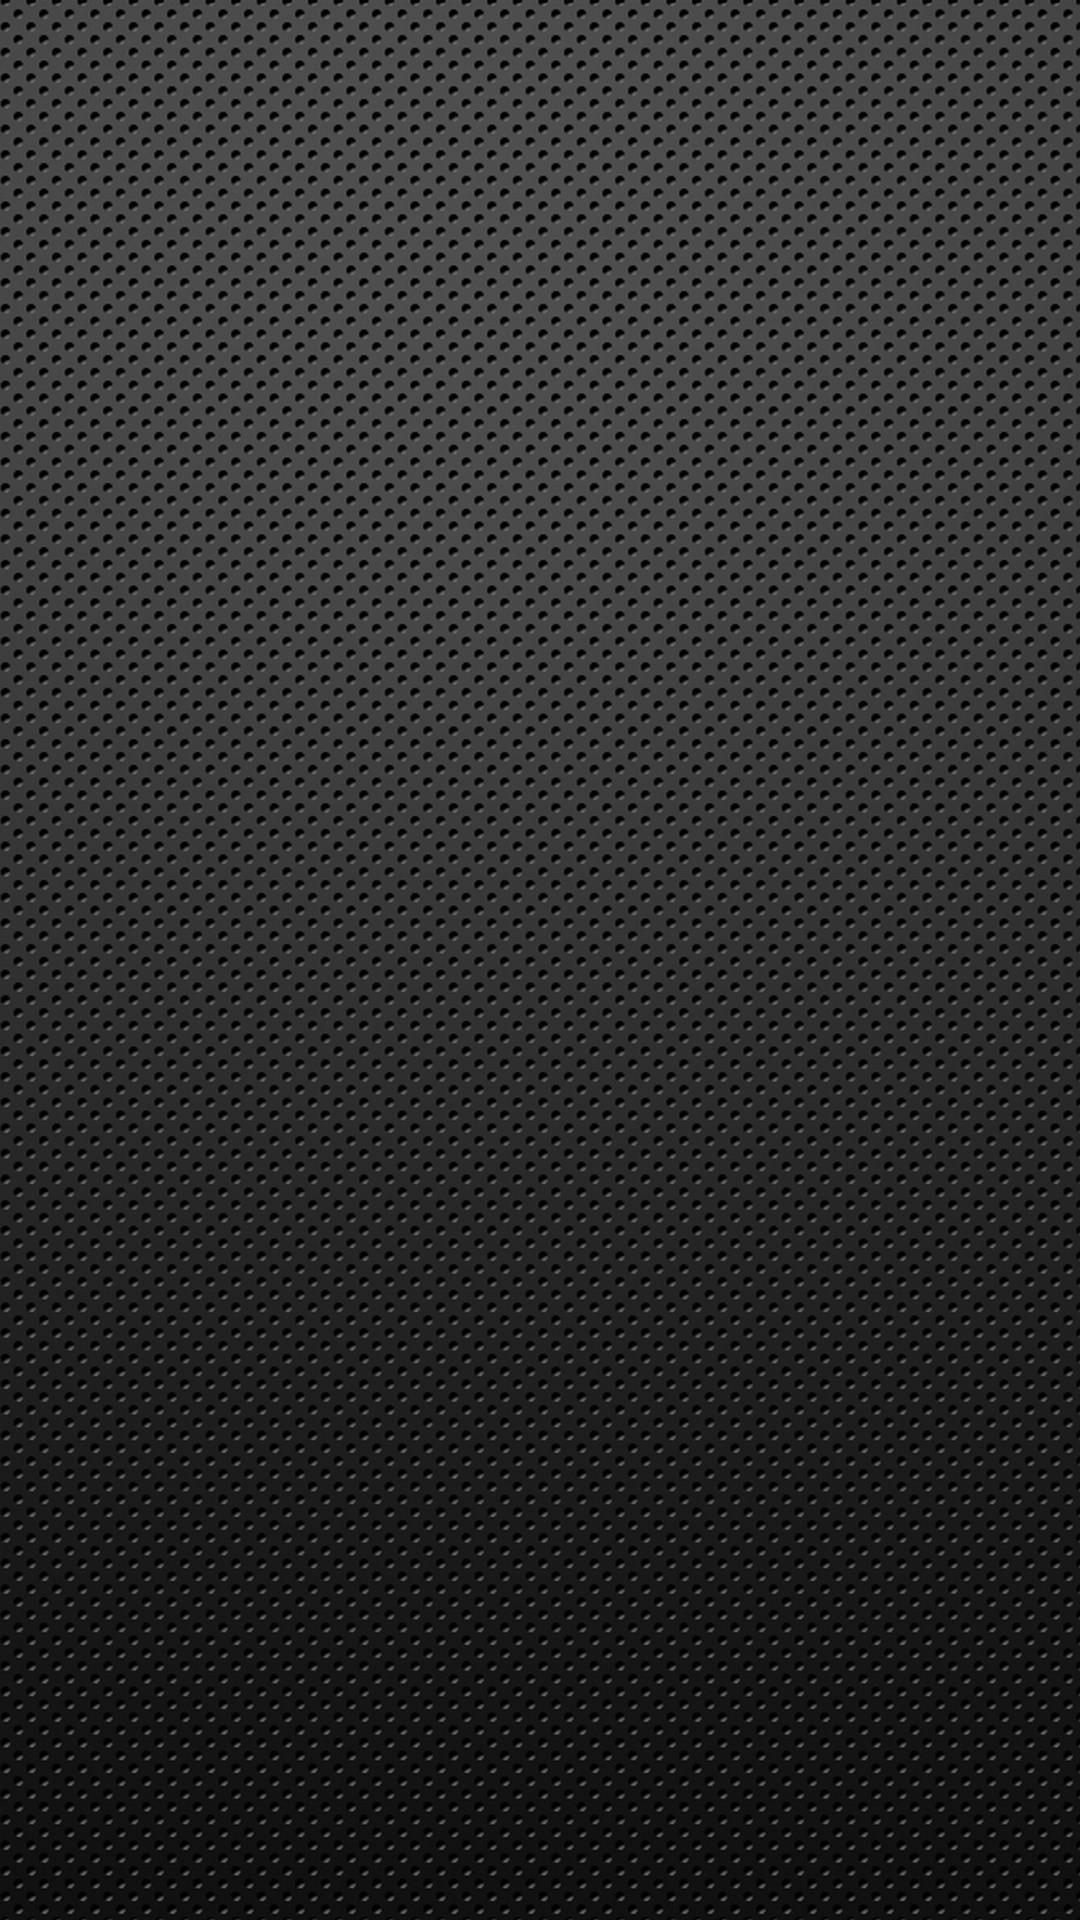 Wallpapers-For-Galaxy-S4-Carbon-8